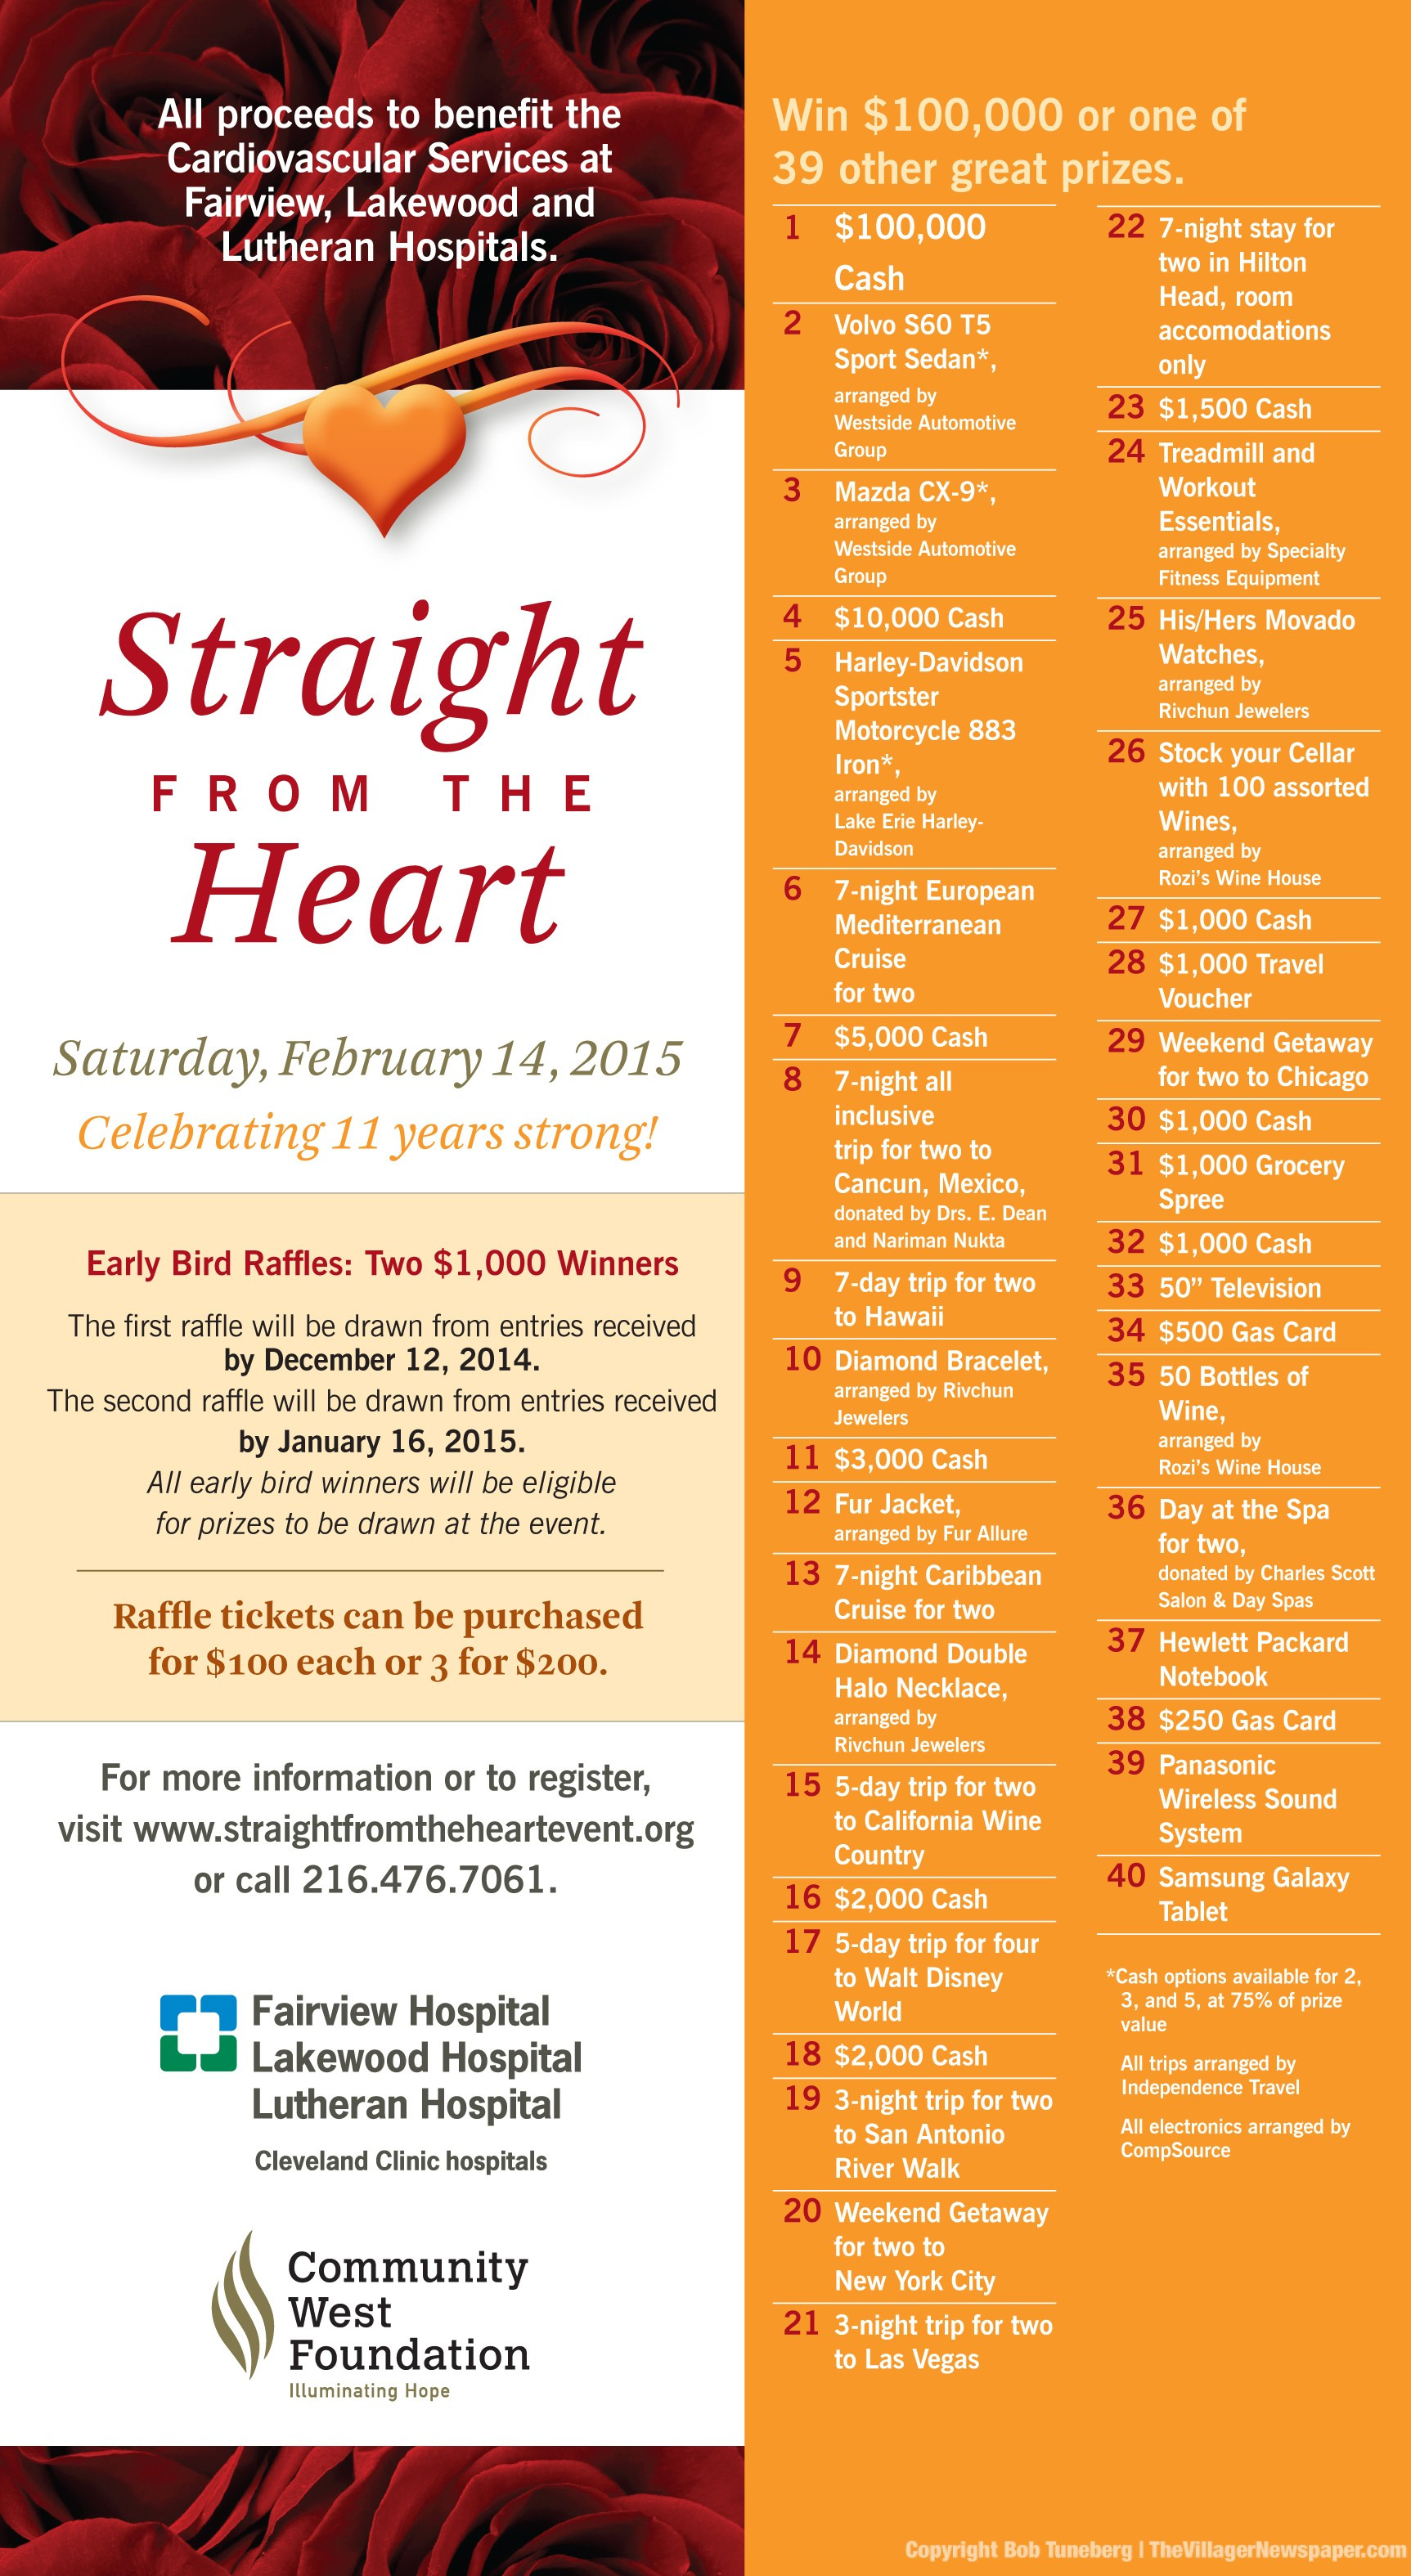 1-8-15 CWF STRAIGHT FROM THE HEART 141349_CWF_StraightfromtheHeart_Ad